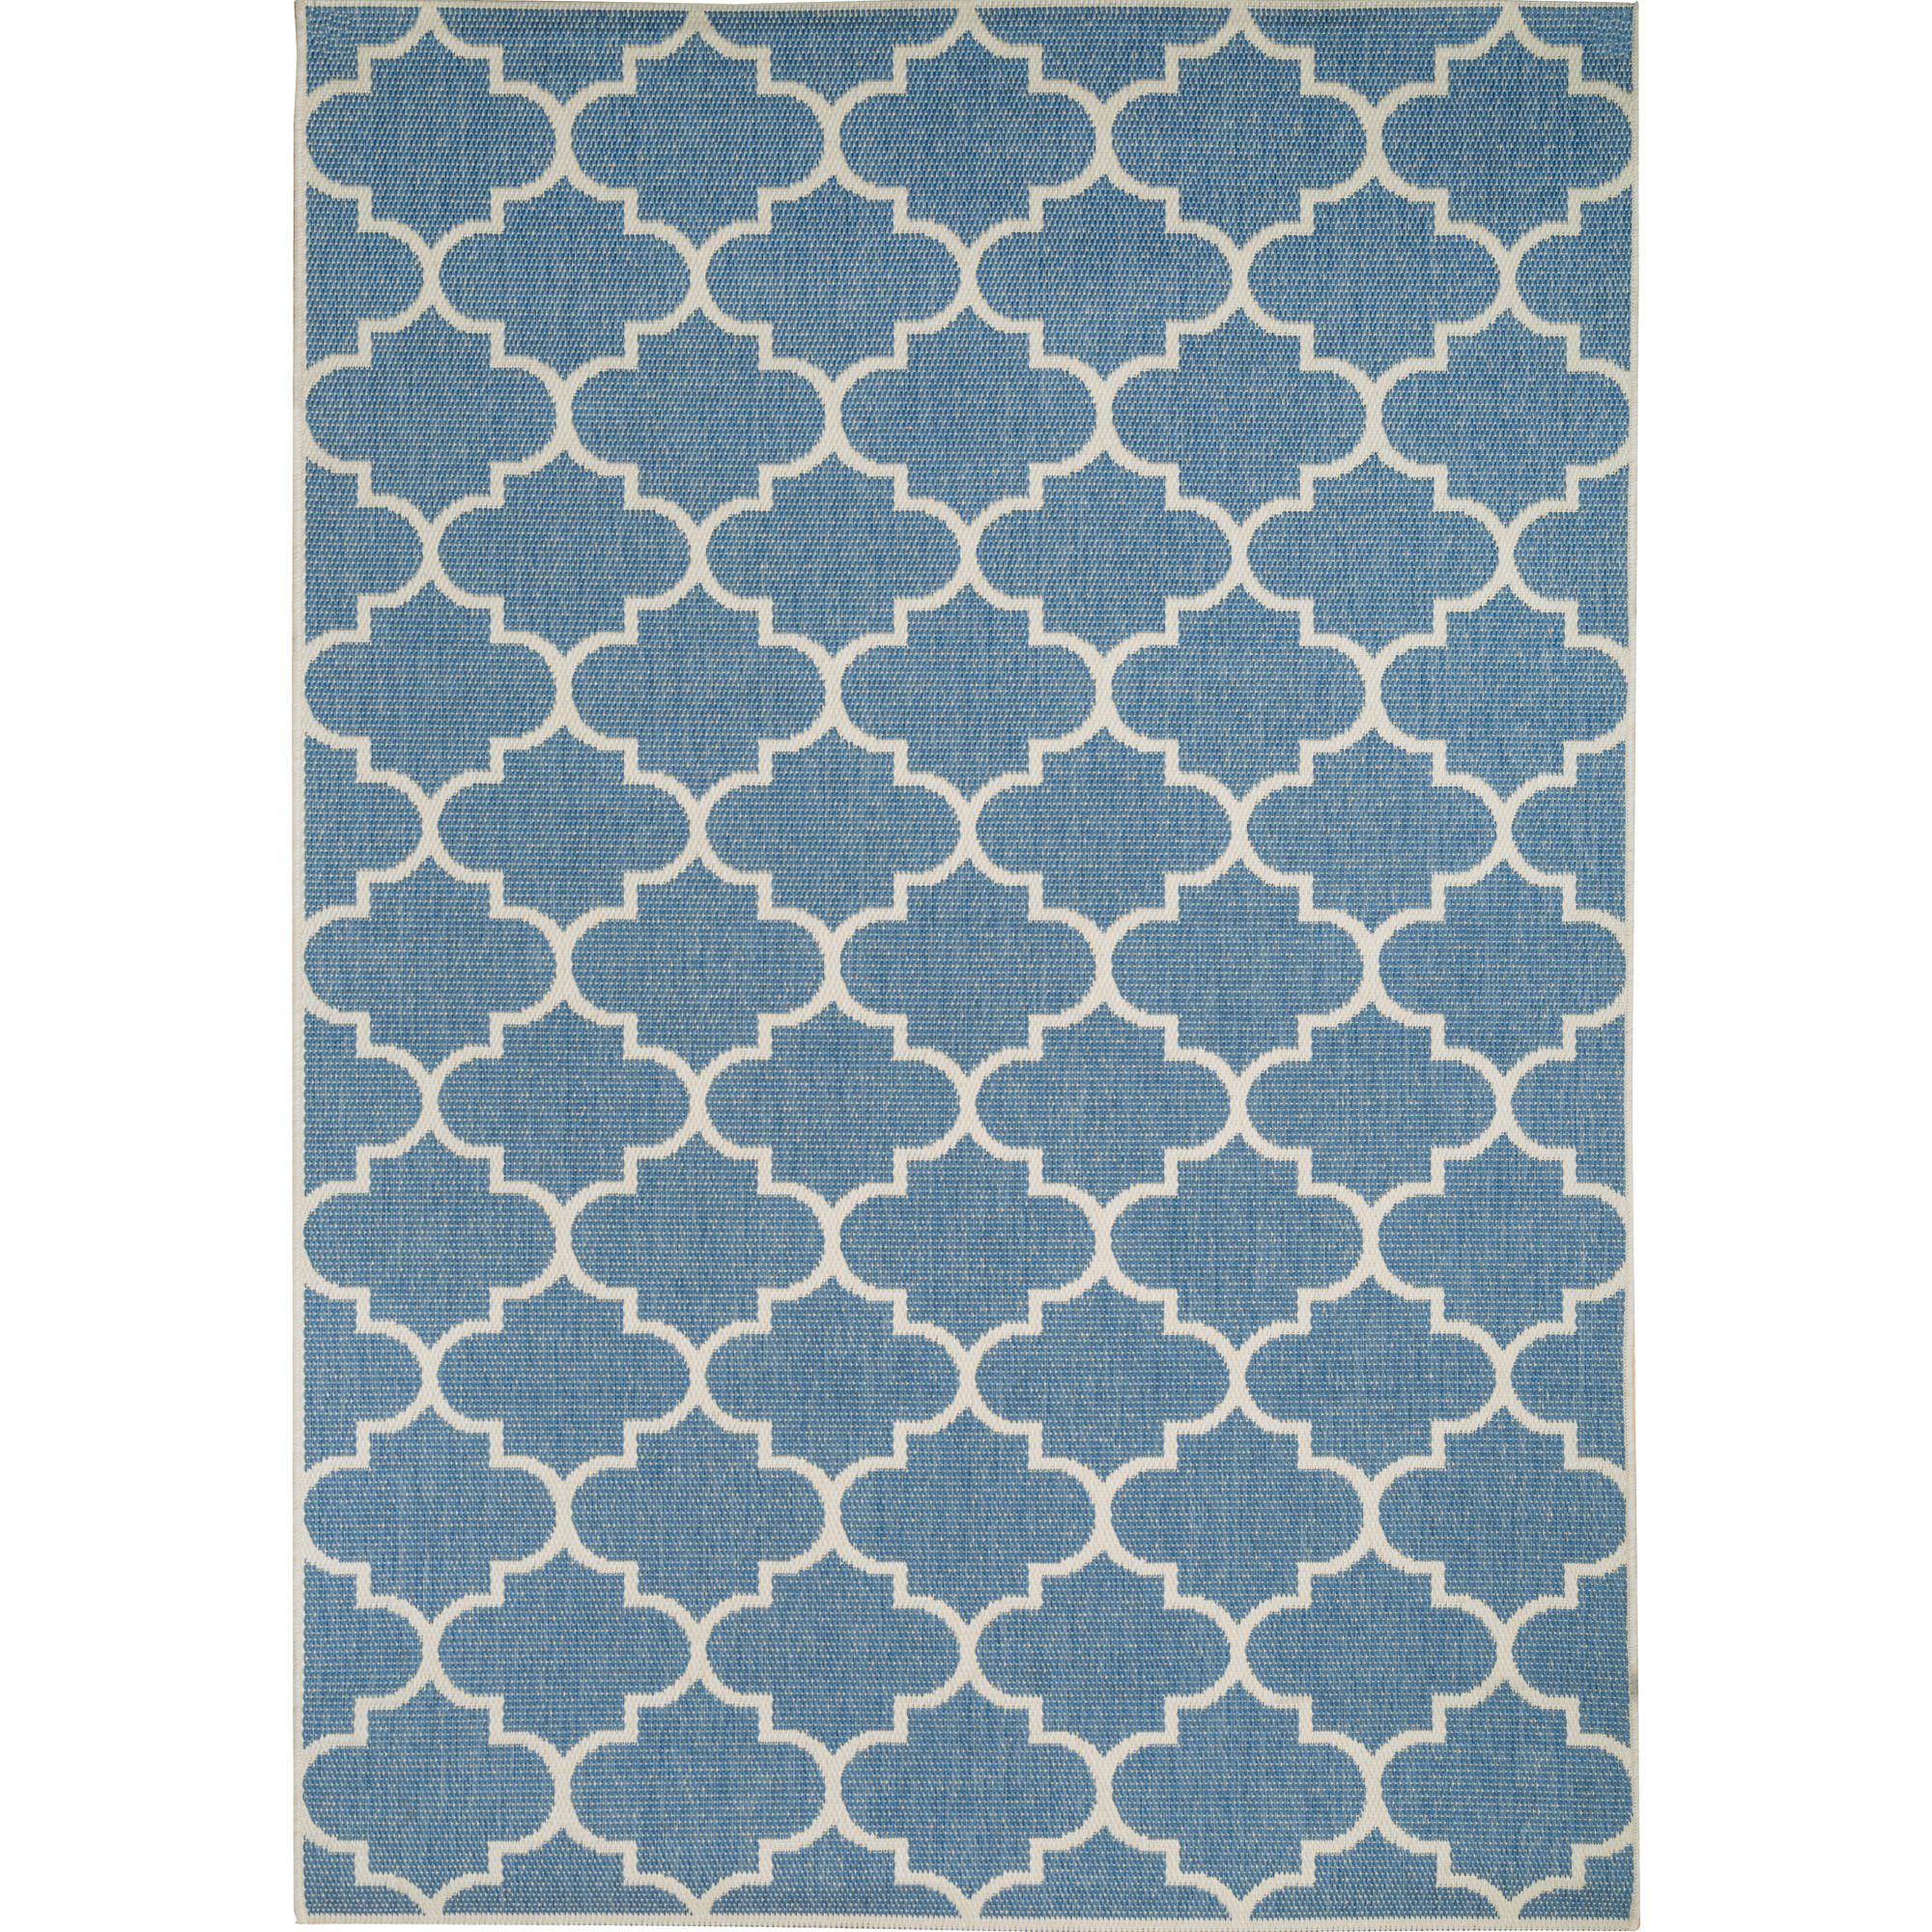 Blue and Champagne Seashells Outdoor Rugs on Sale